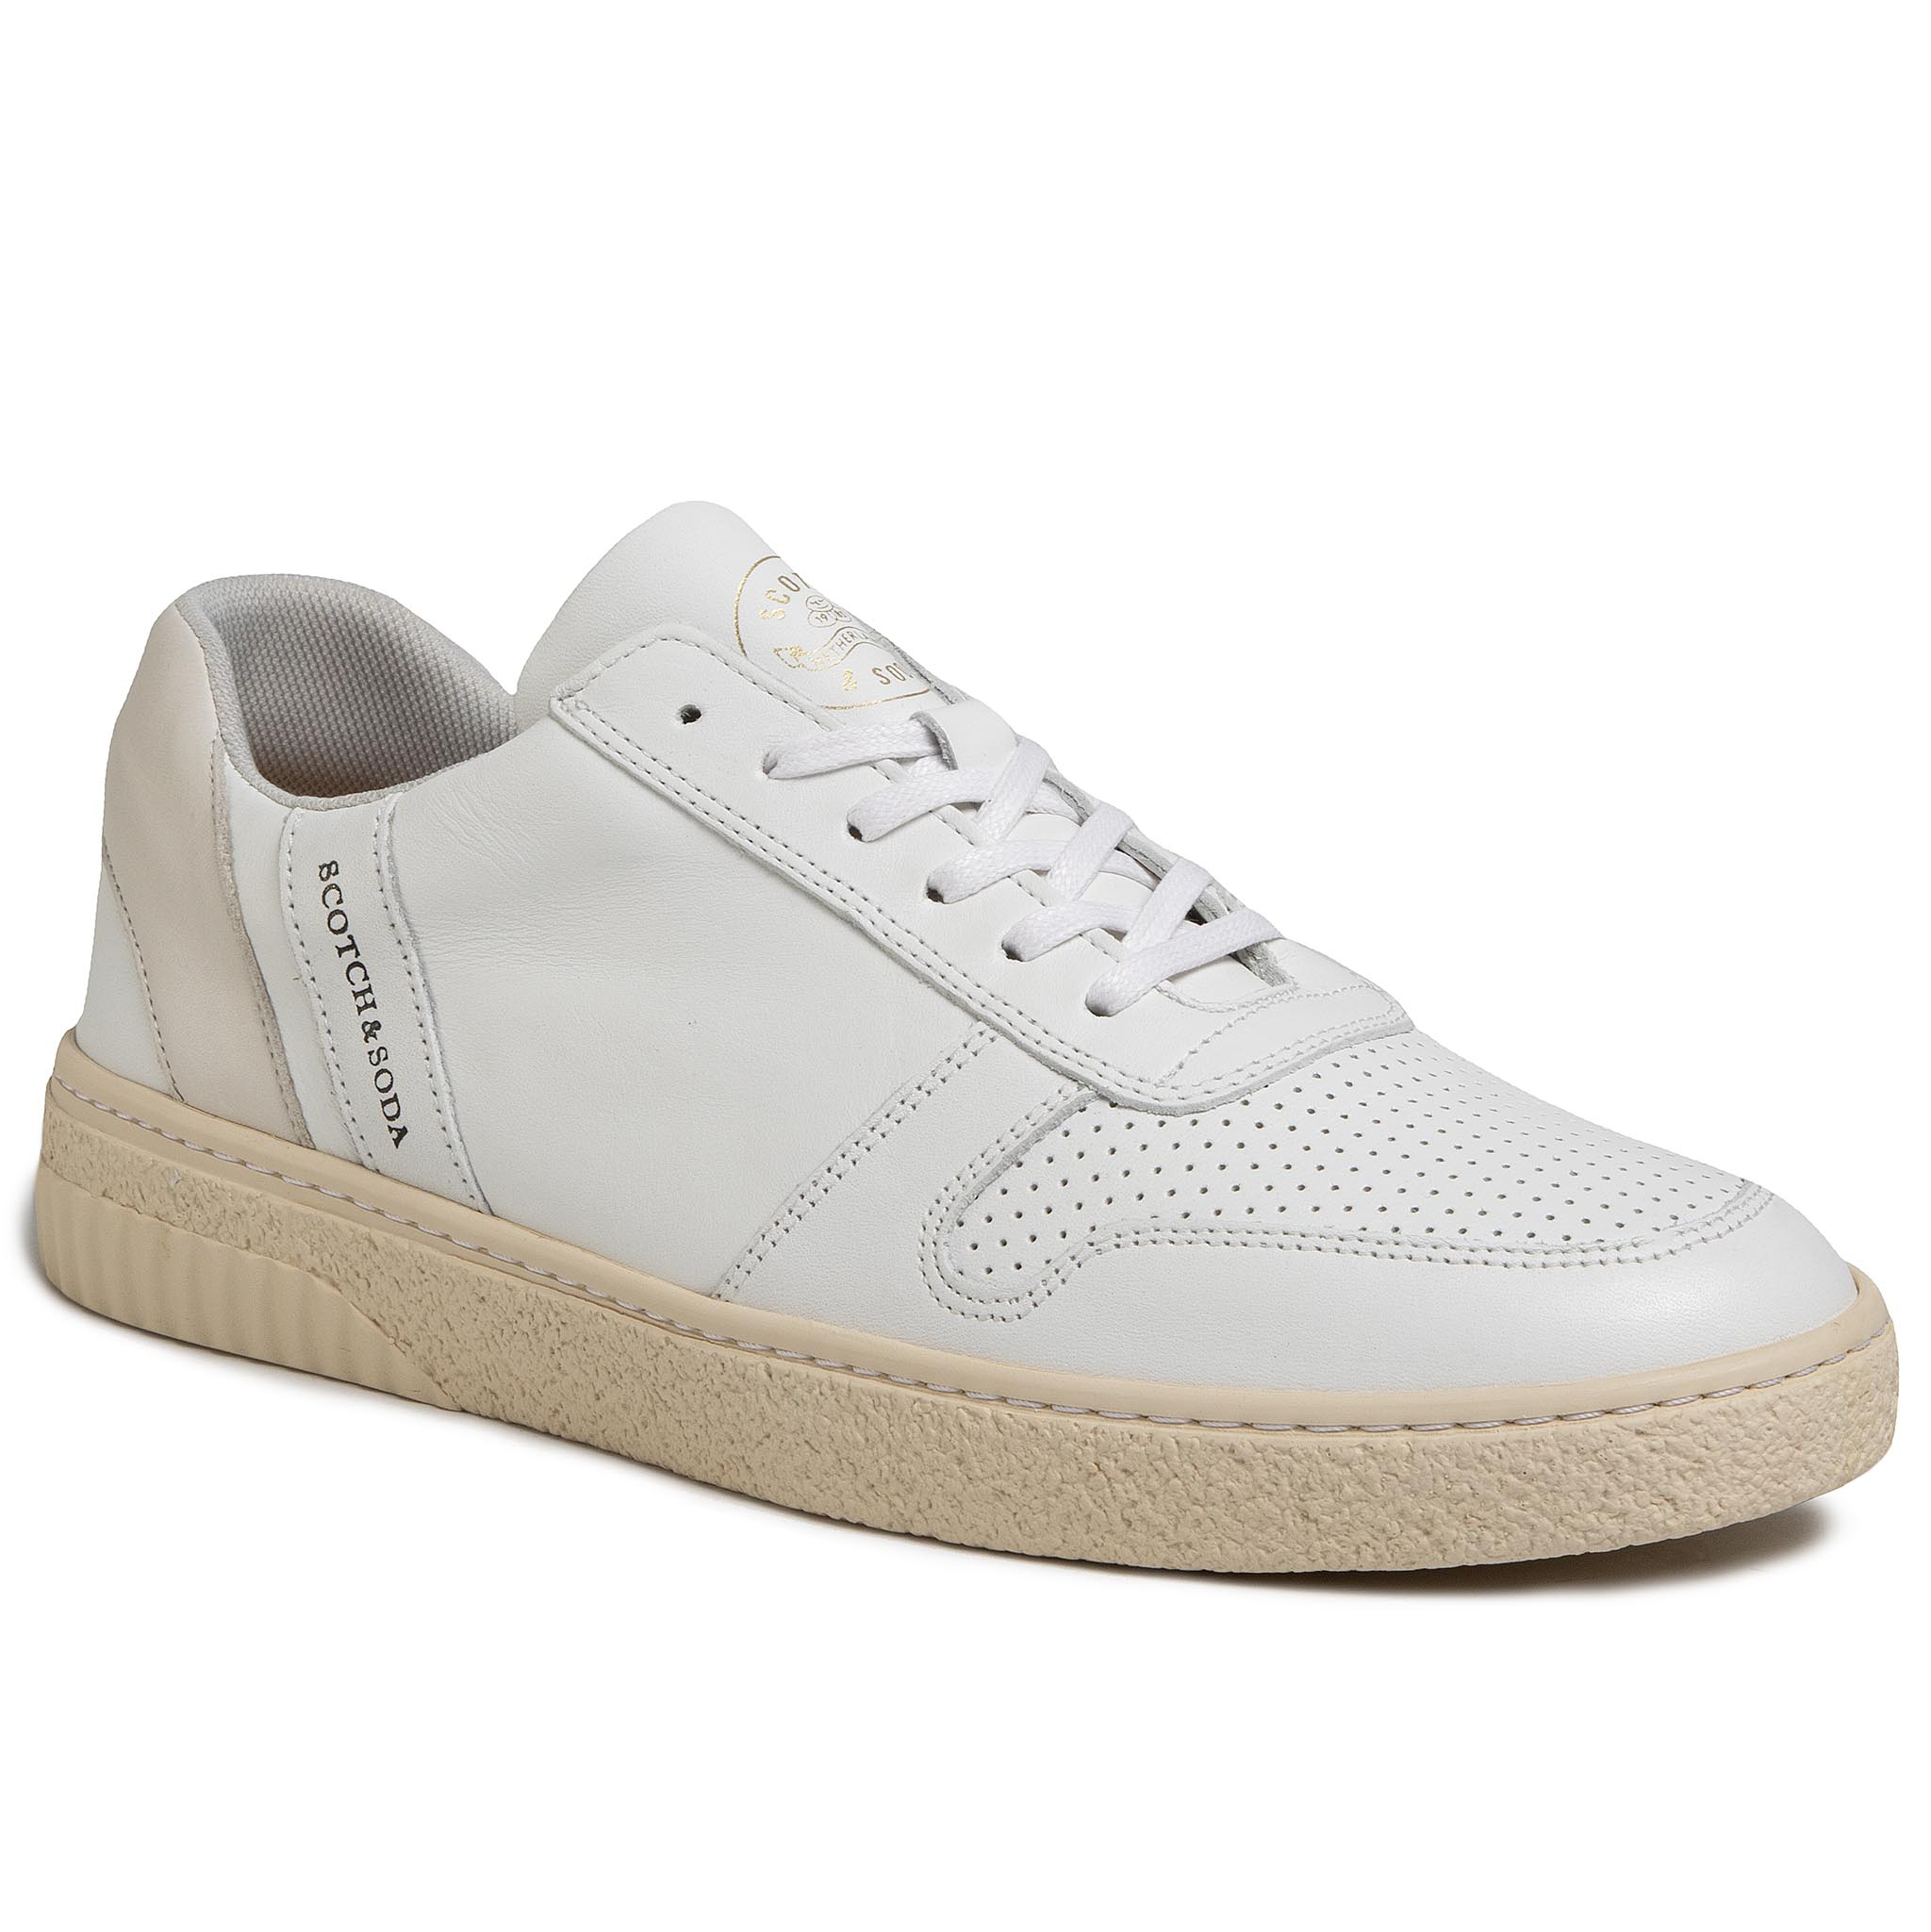 Sneakers SCOTCH & SODA - Brilliant 20831641 White S29